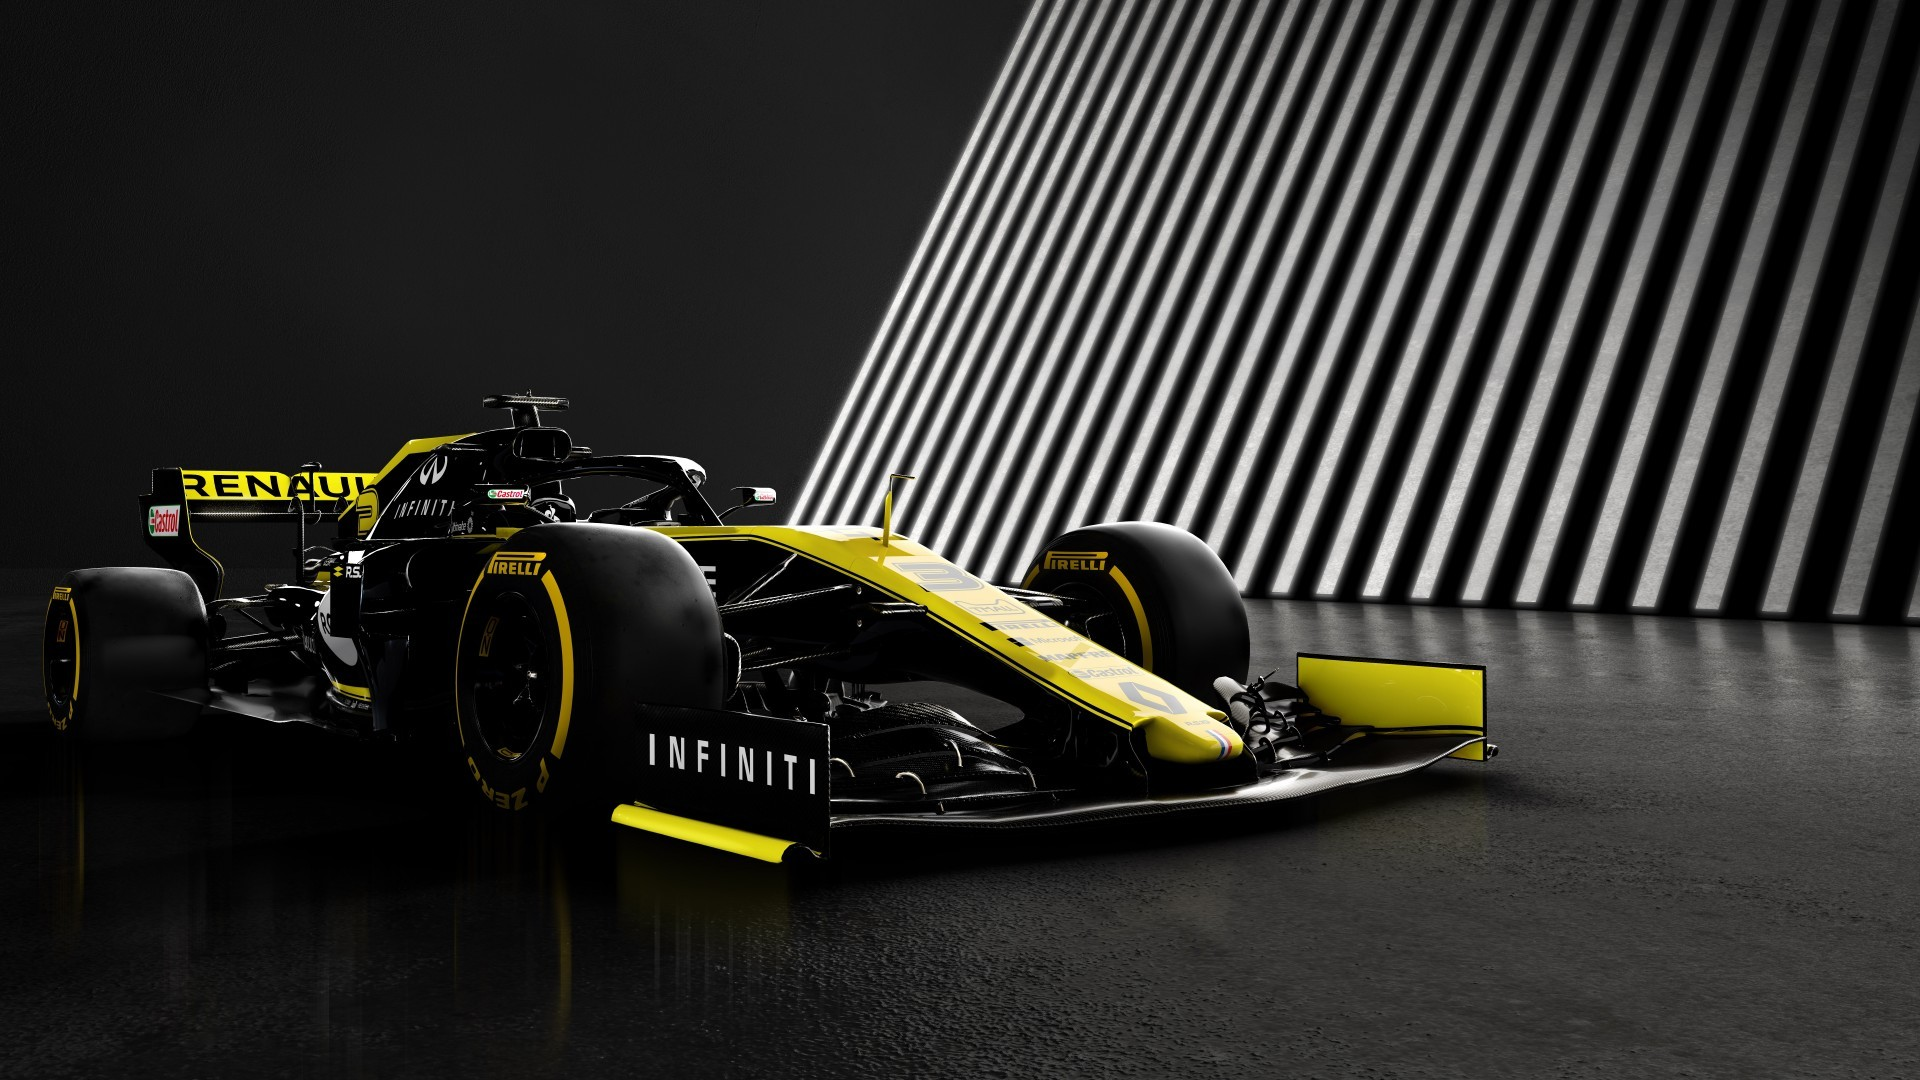 Download 1920x1080 Formula 1 Renault Rs19 Racing Cars Yellow 1920x1080